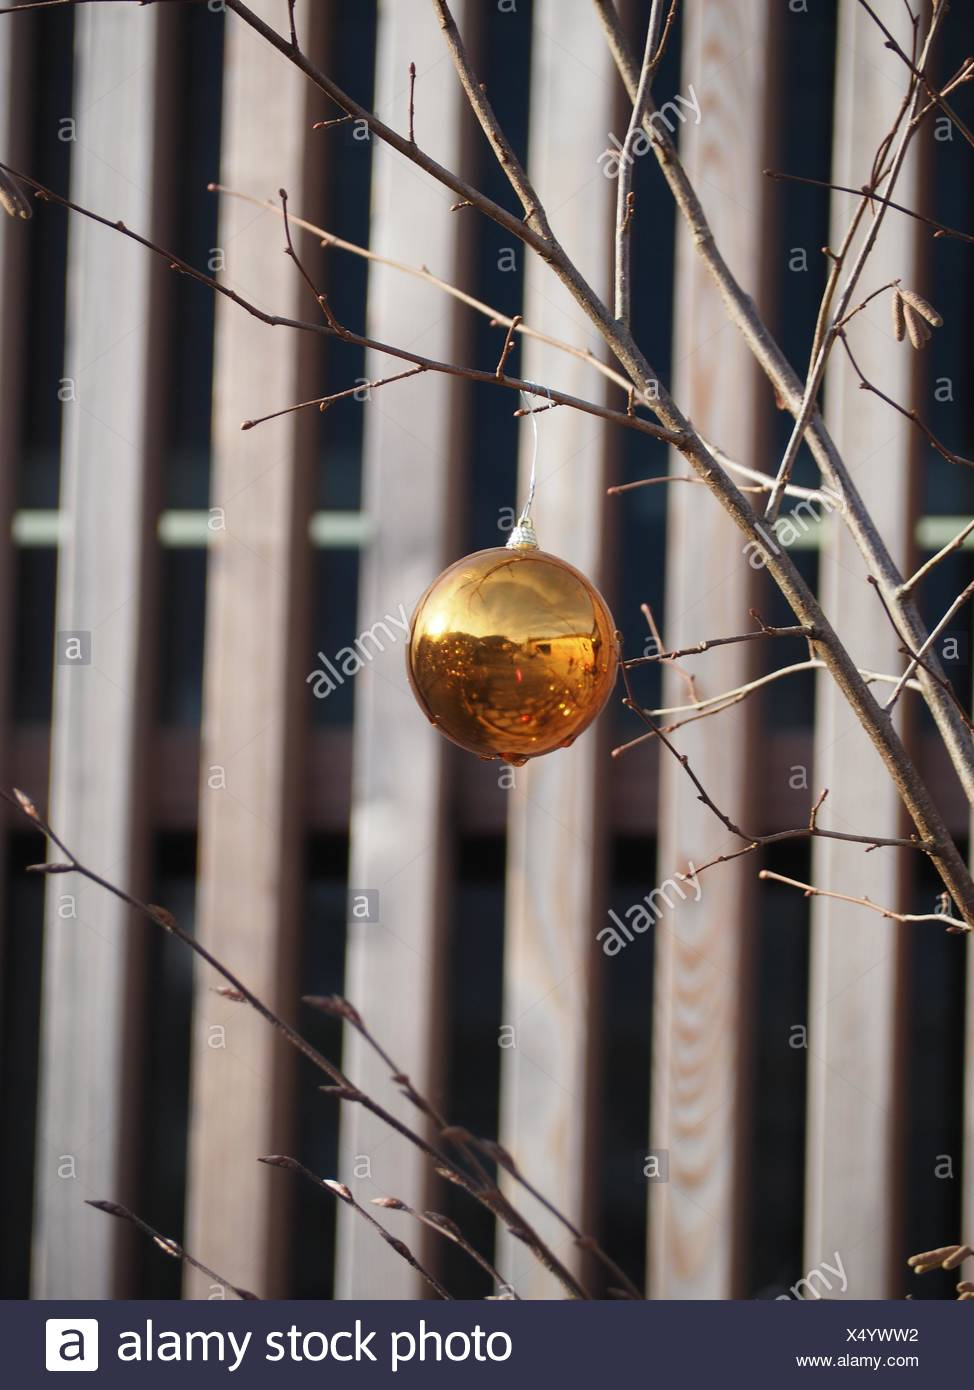 Close-Up Of Decoration Hanging On Dried Plant Against Fence - Stock Image